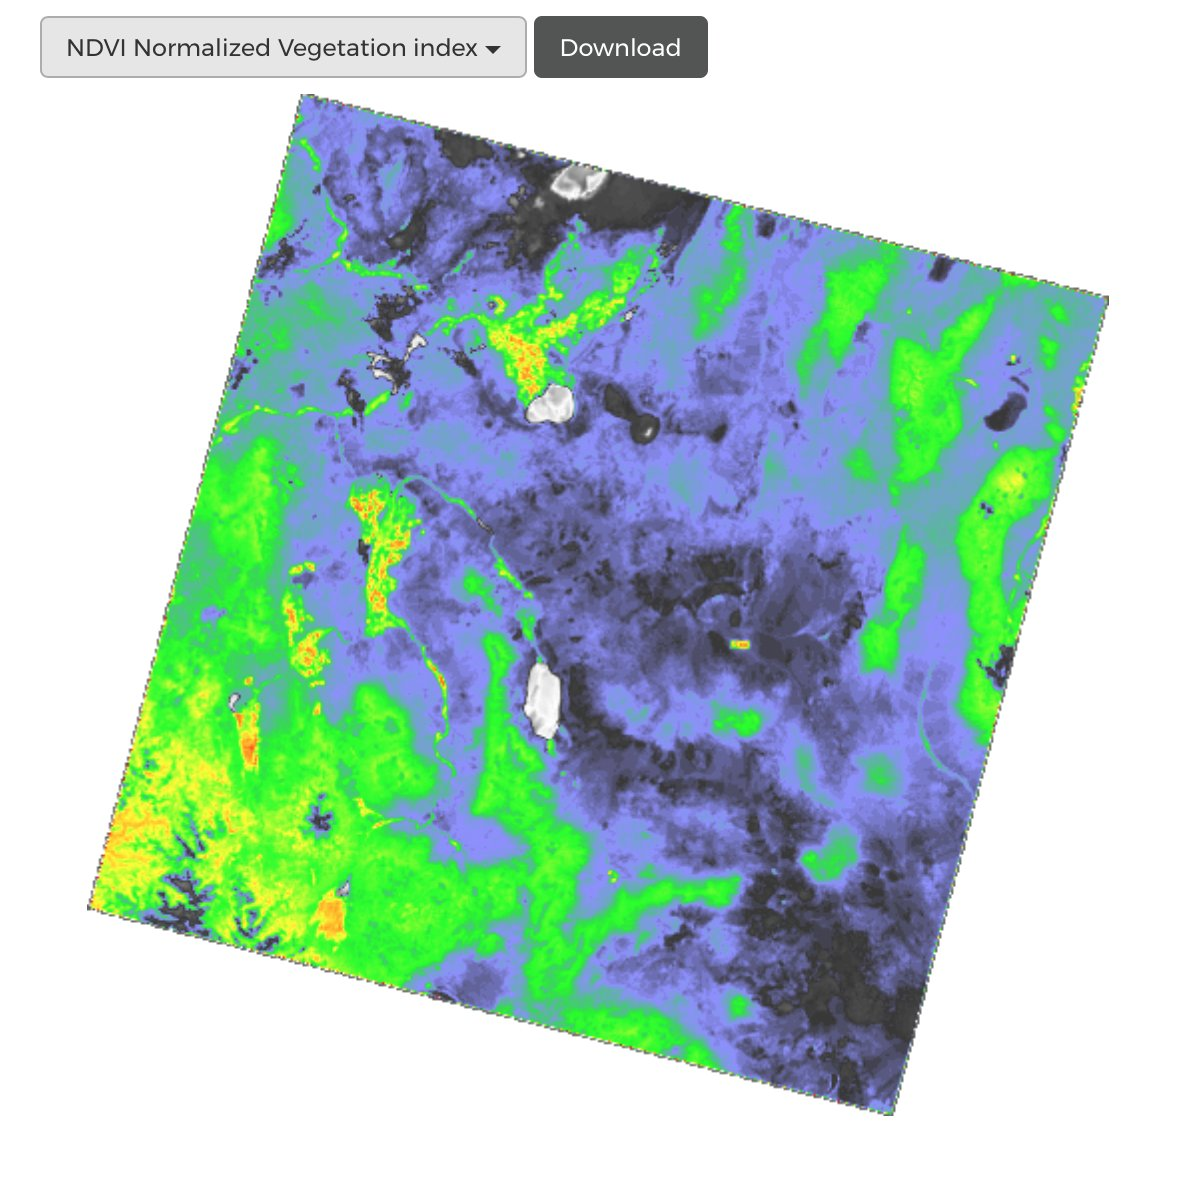 12. Using earthexplorer to find landsat data | the nature of.